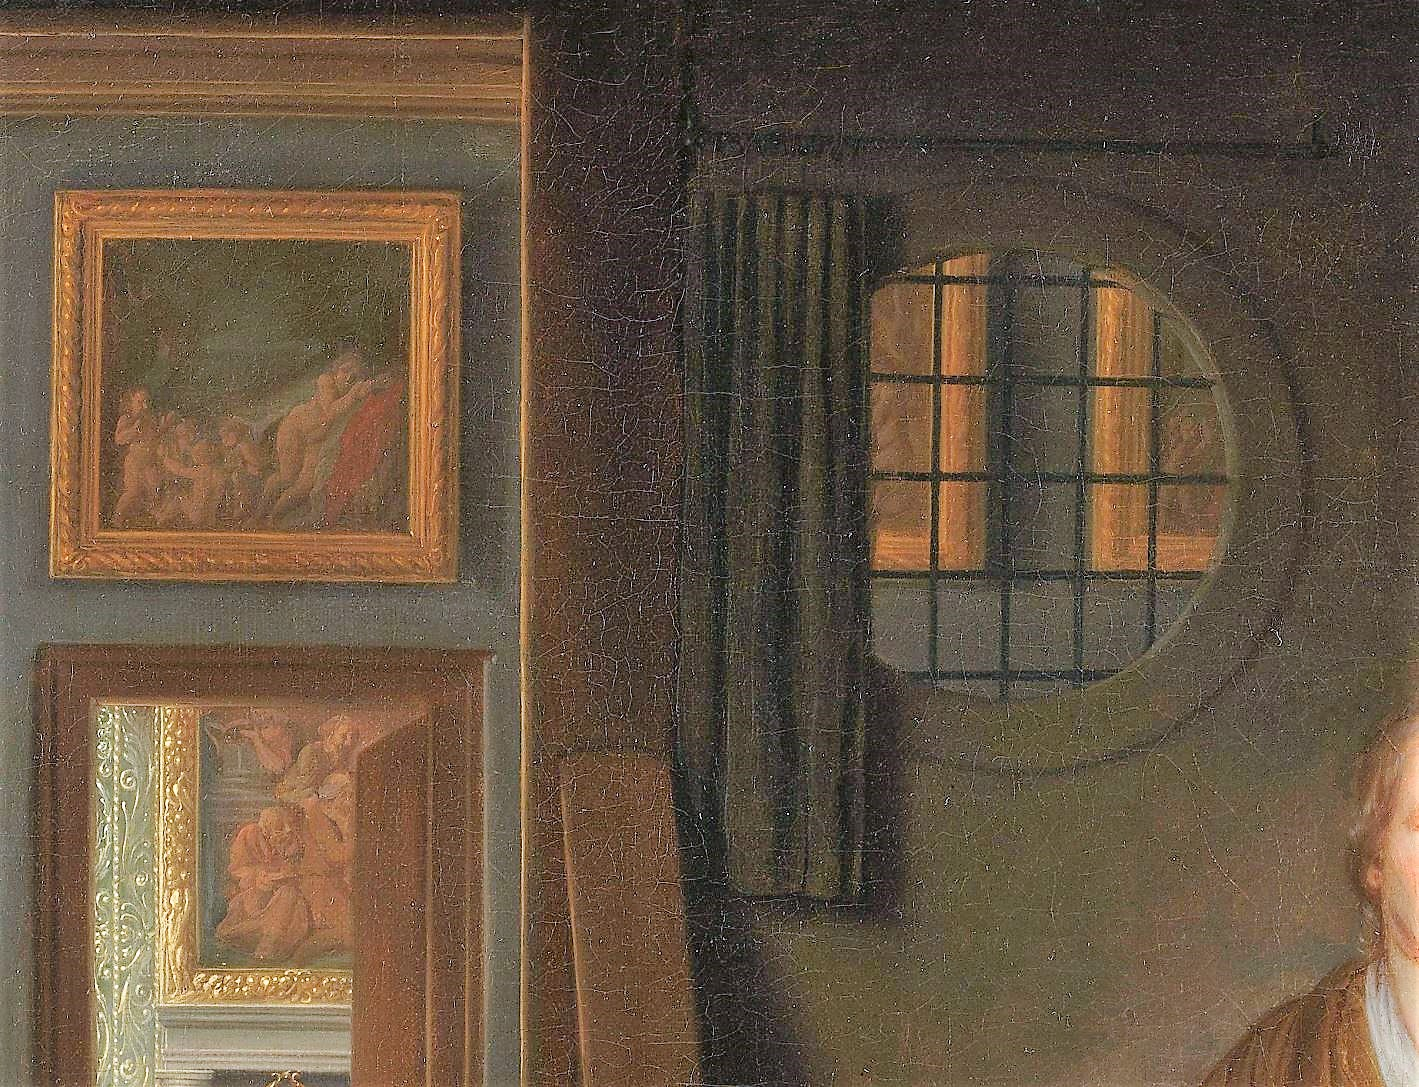 Samuel van Hoogstraten, 1660 - 1678 The Anemic Lady Rikjsmuseum detail tableaux